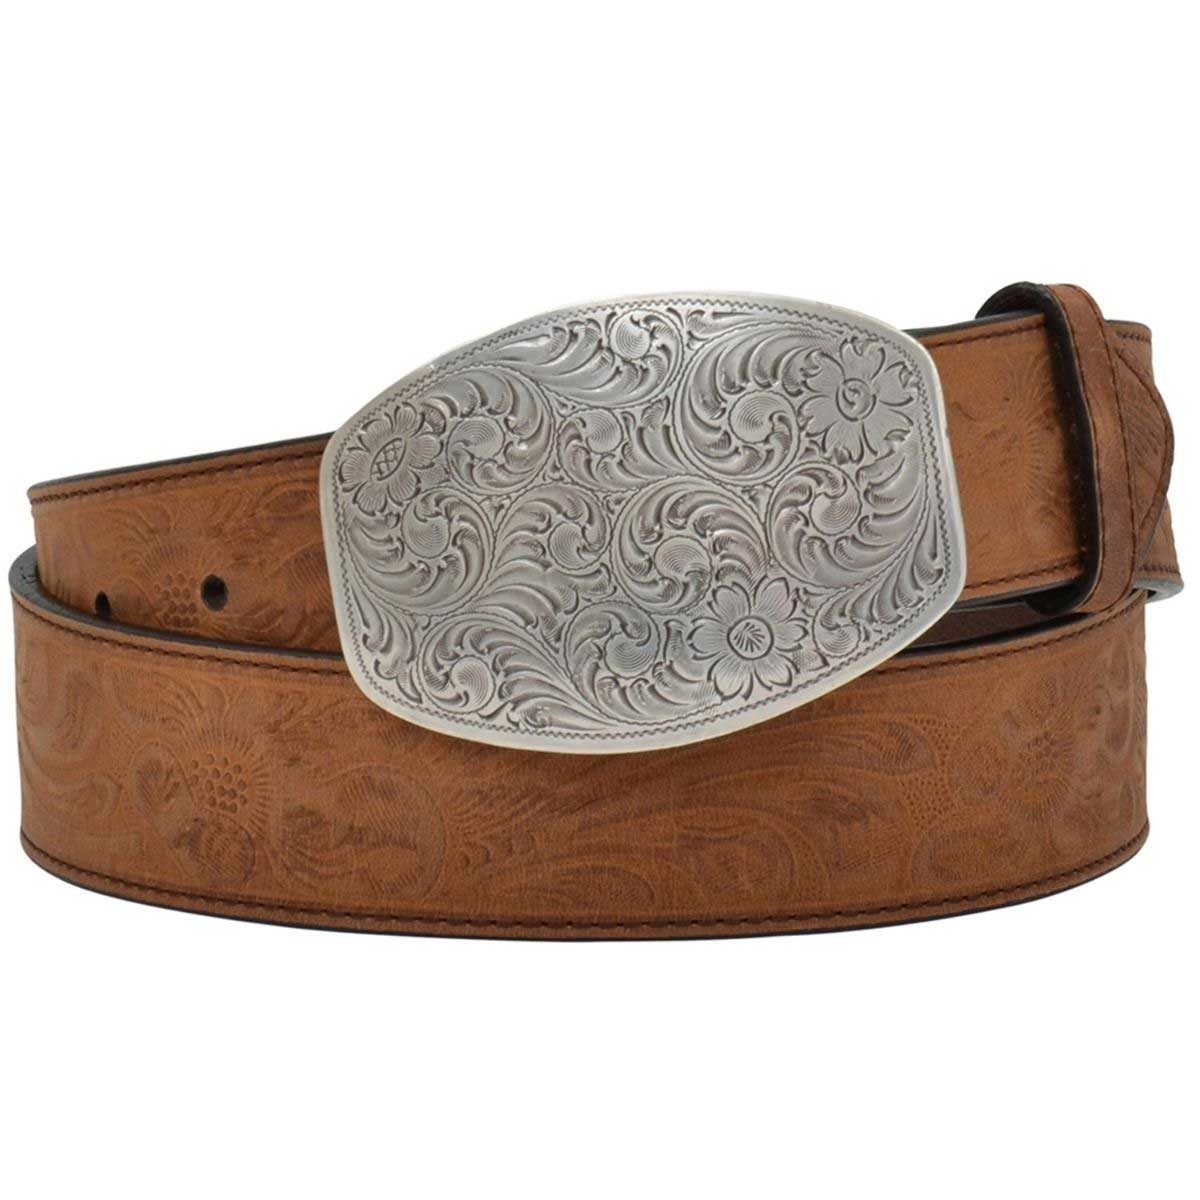 M & F Western Angel Ranch Women's Floral Tooled Belt